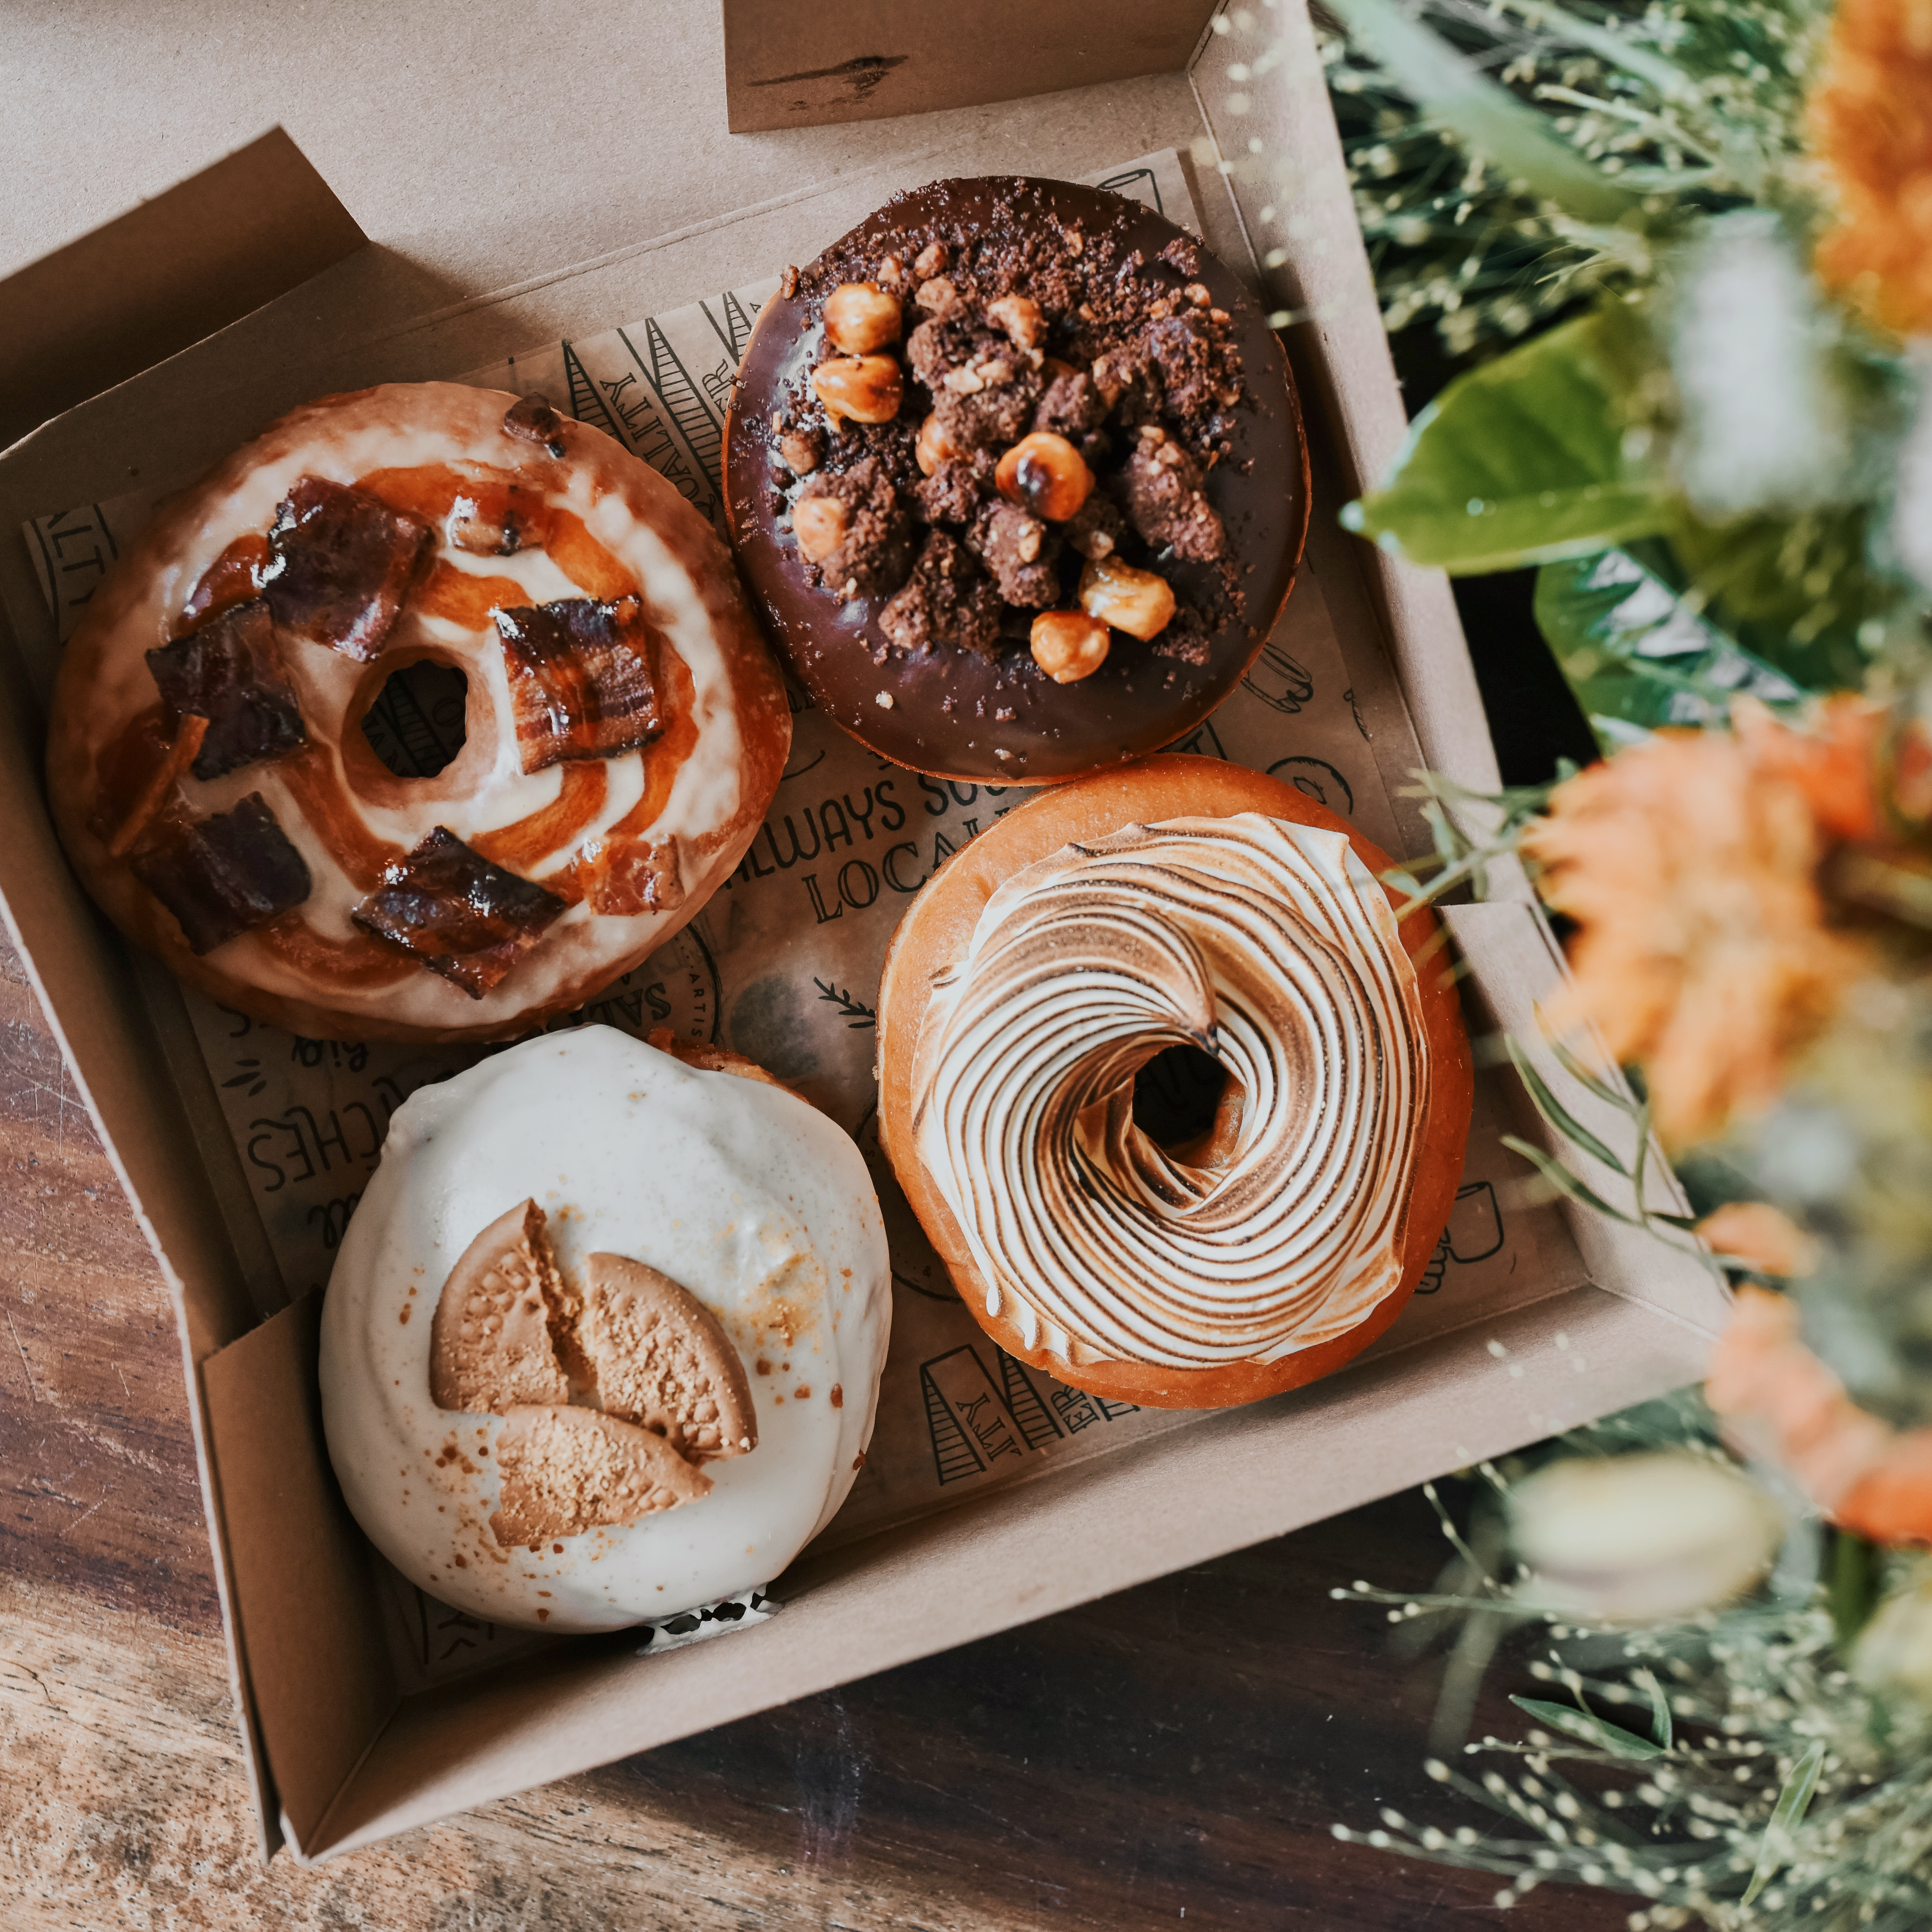 A Beloved Miami Doughnut Shop's Lavishly Topped Pastries Will Soon Debut in Dallas